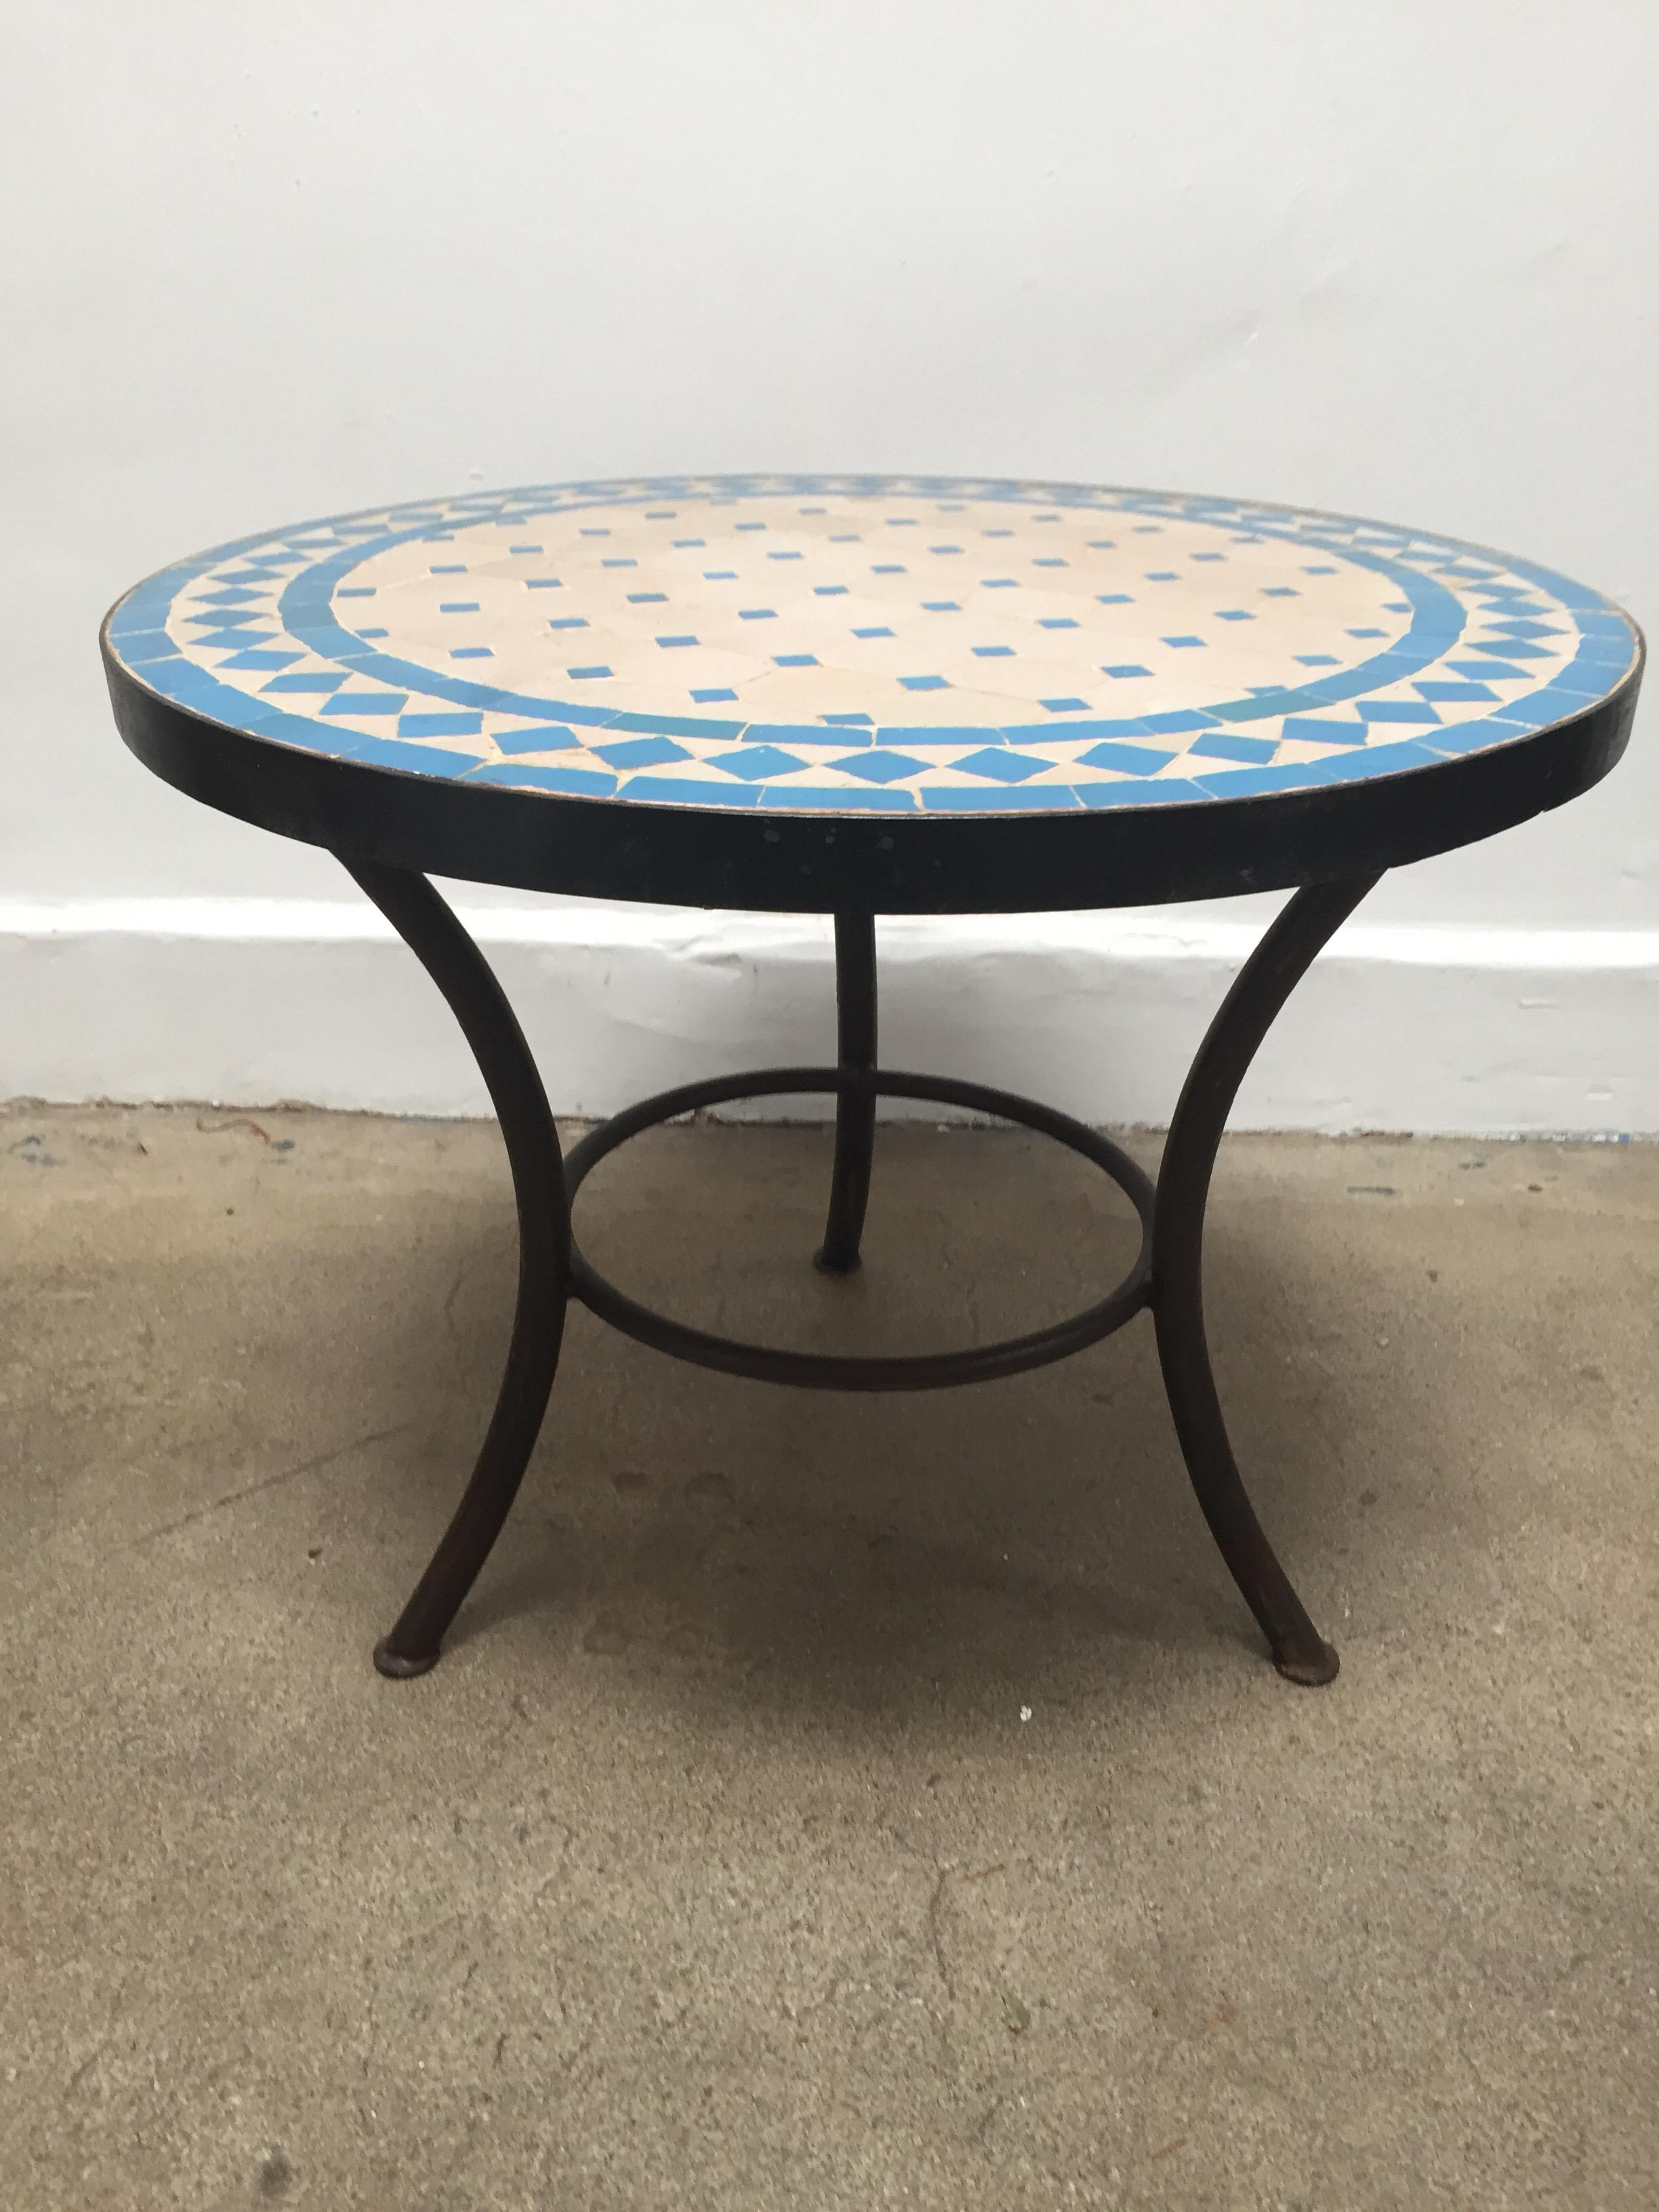 moroccan mosaic outdoor turquoise tile side table low iron base mobilejpegupload master for occasional furniture vintage replica target console website design meyda tiffany lamp